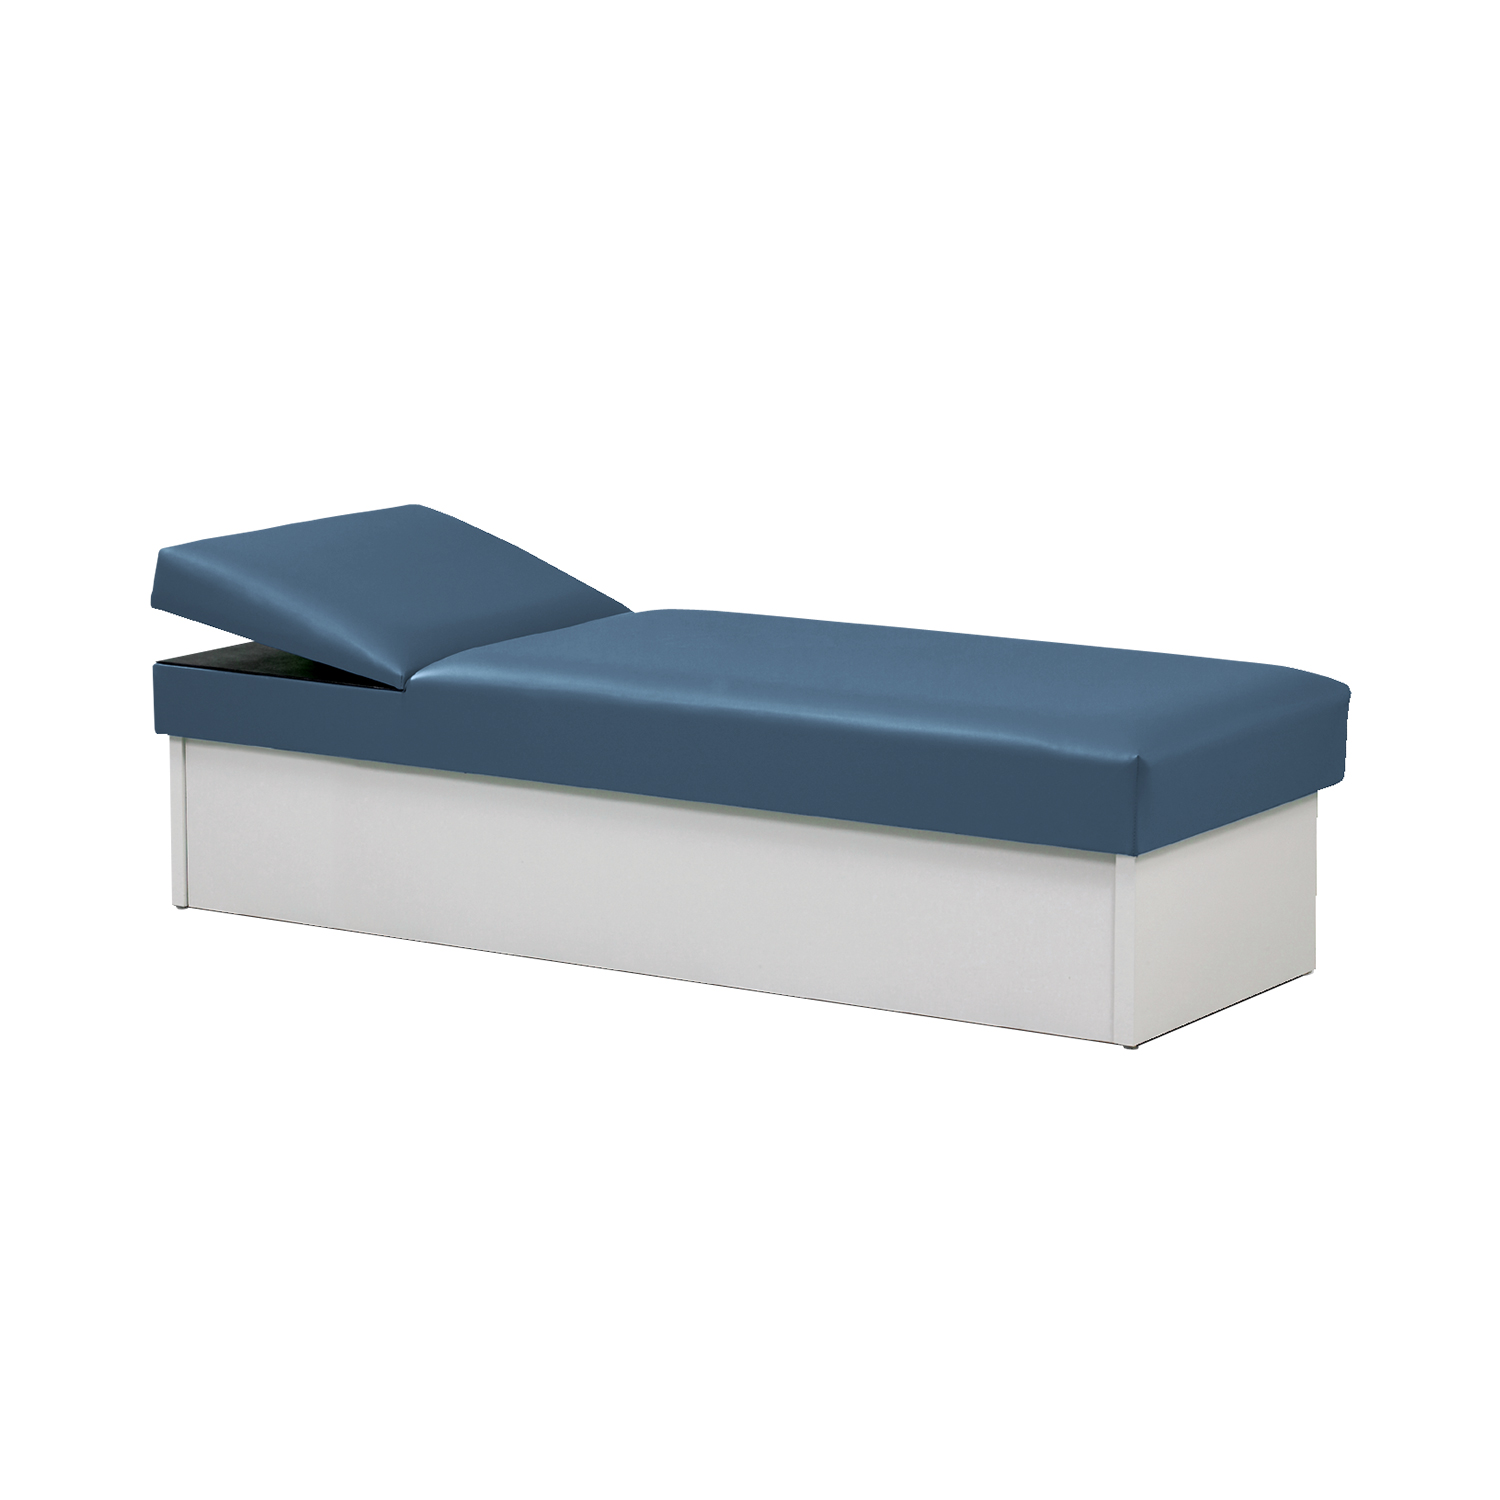 Clinton Solid Base Couch - 3790